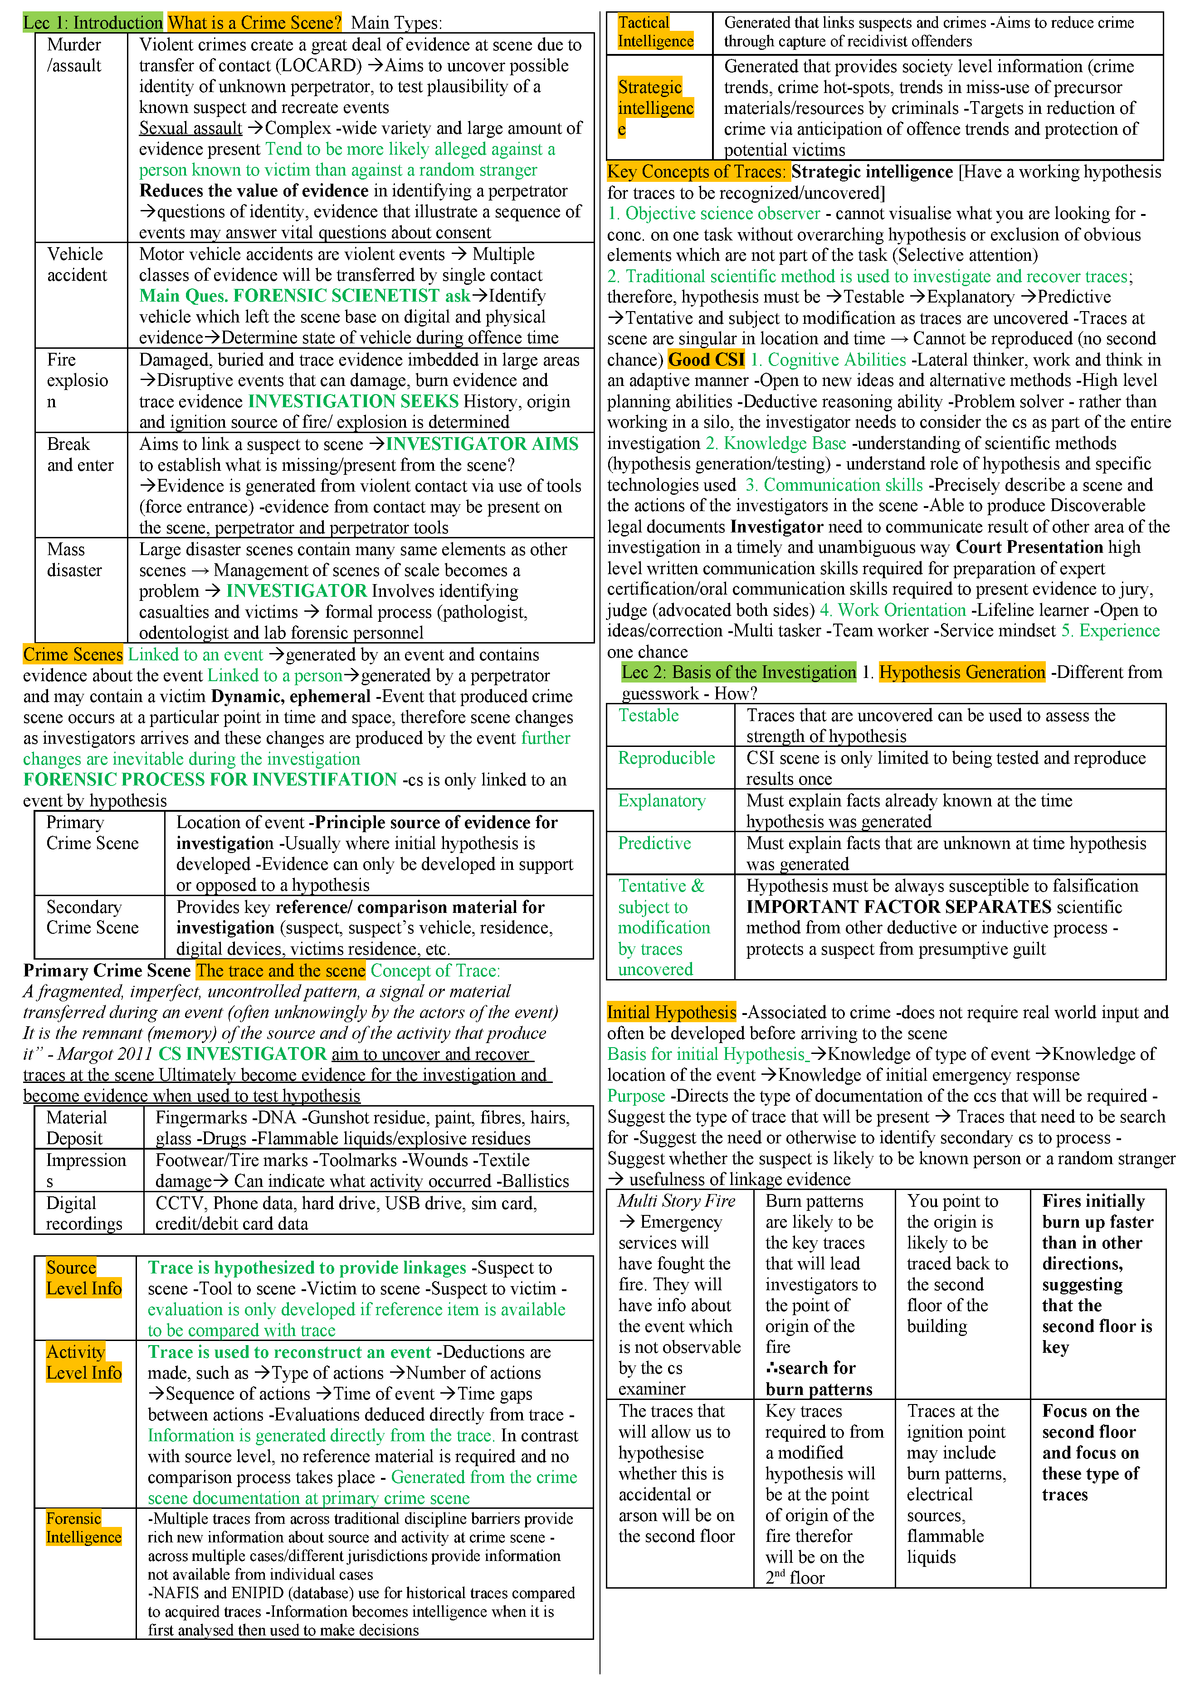 CSI cheat sheet - C10387 Bachelor of Forensic Science - UTS